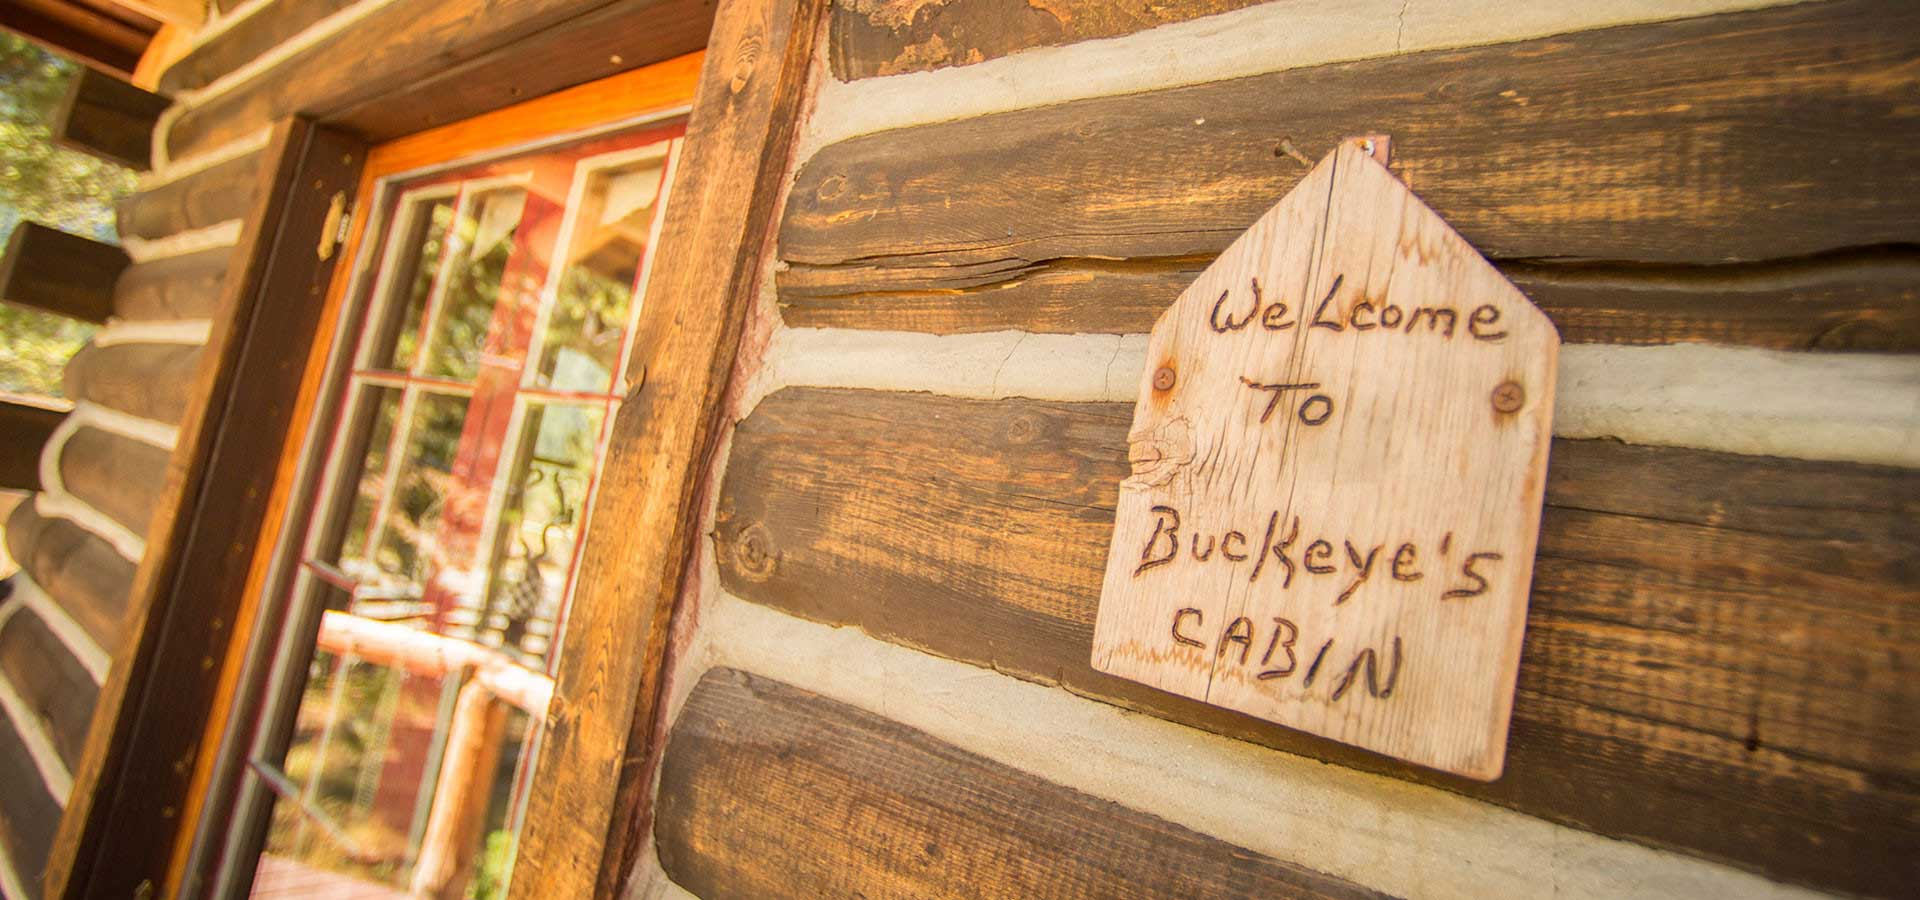 buckeye-welcome-sign